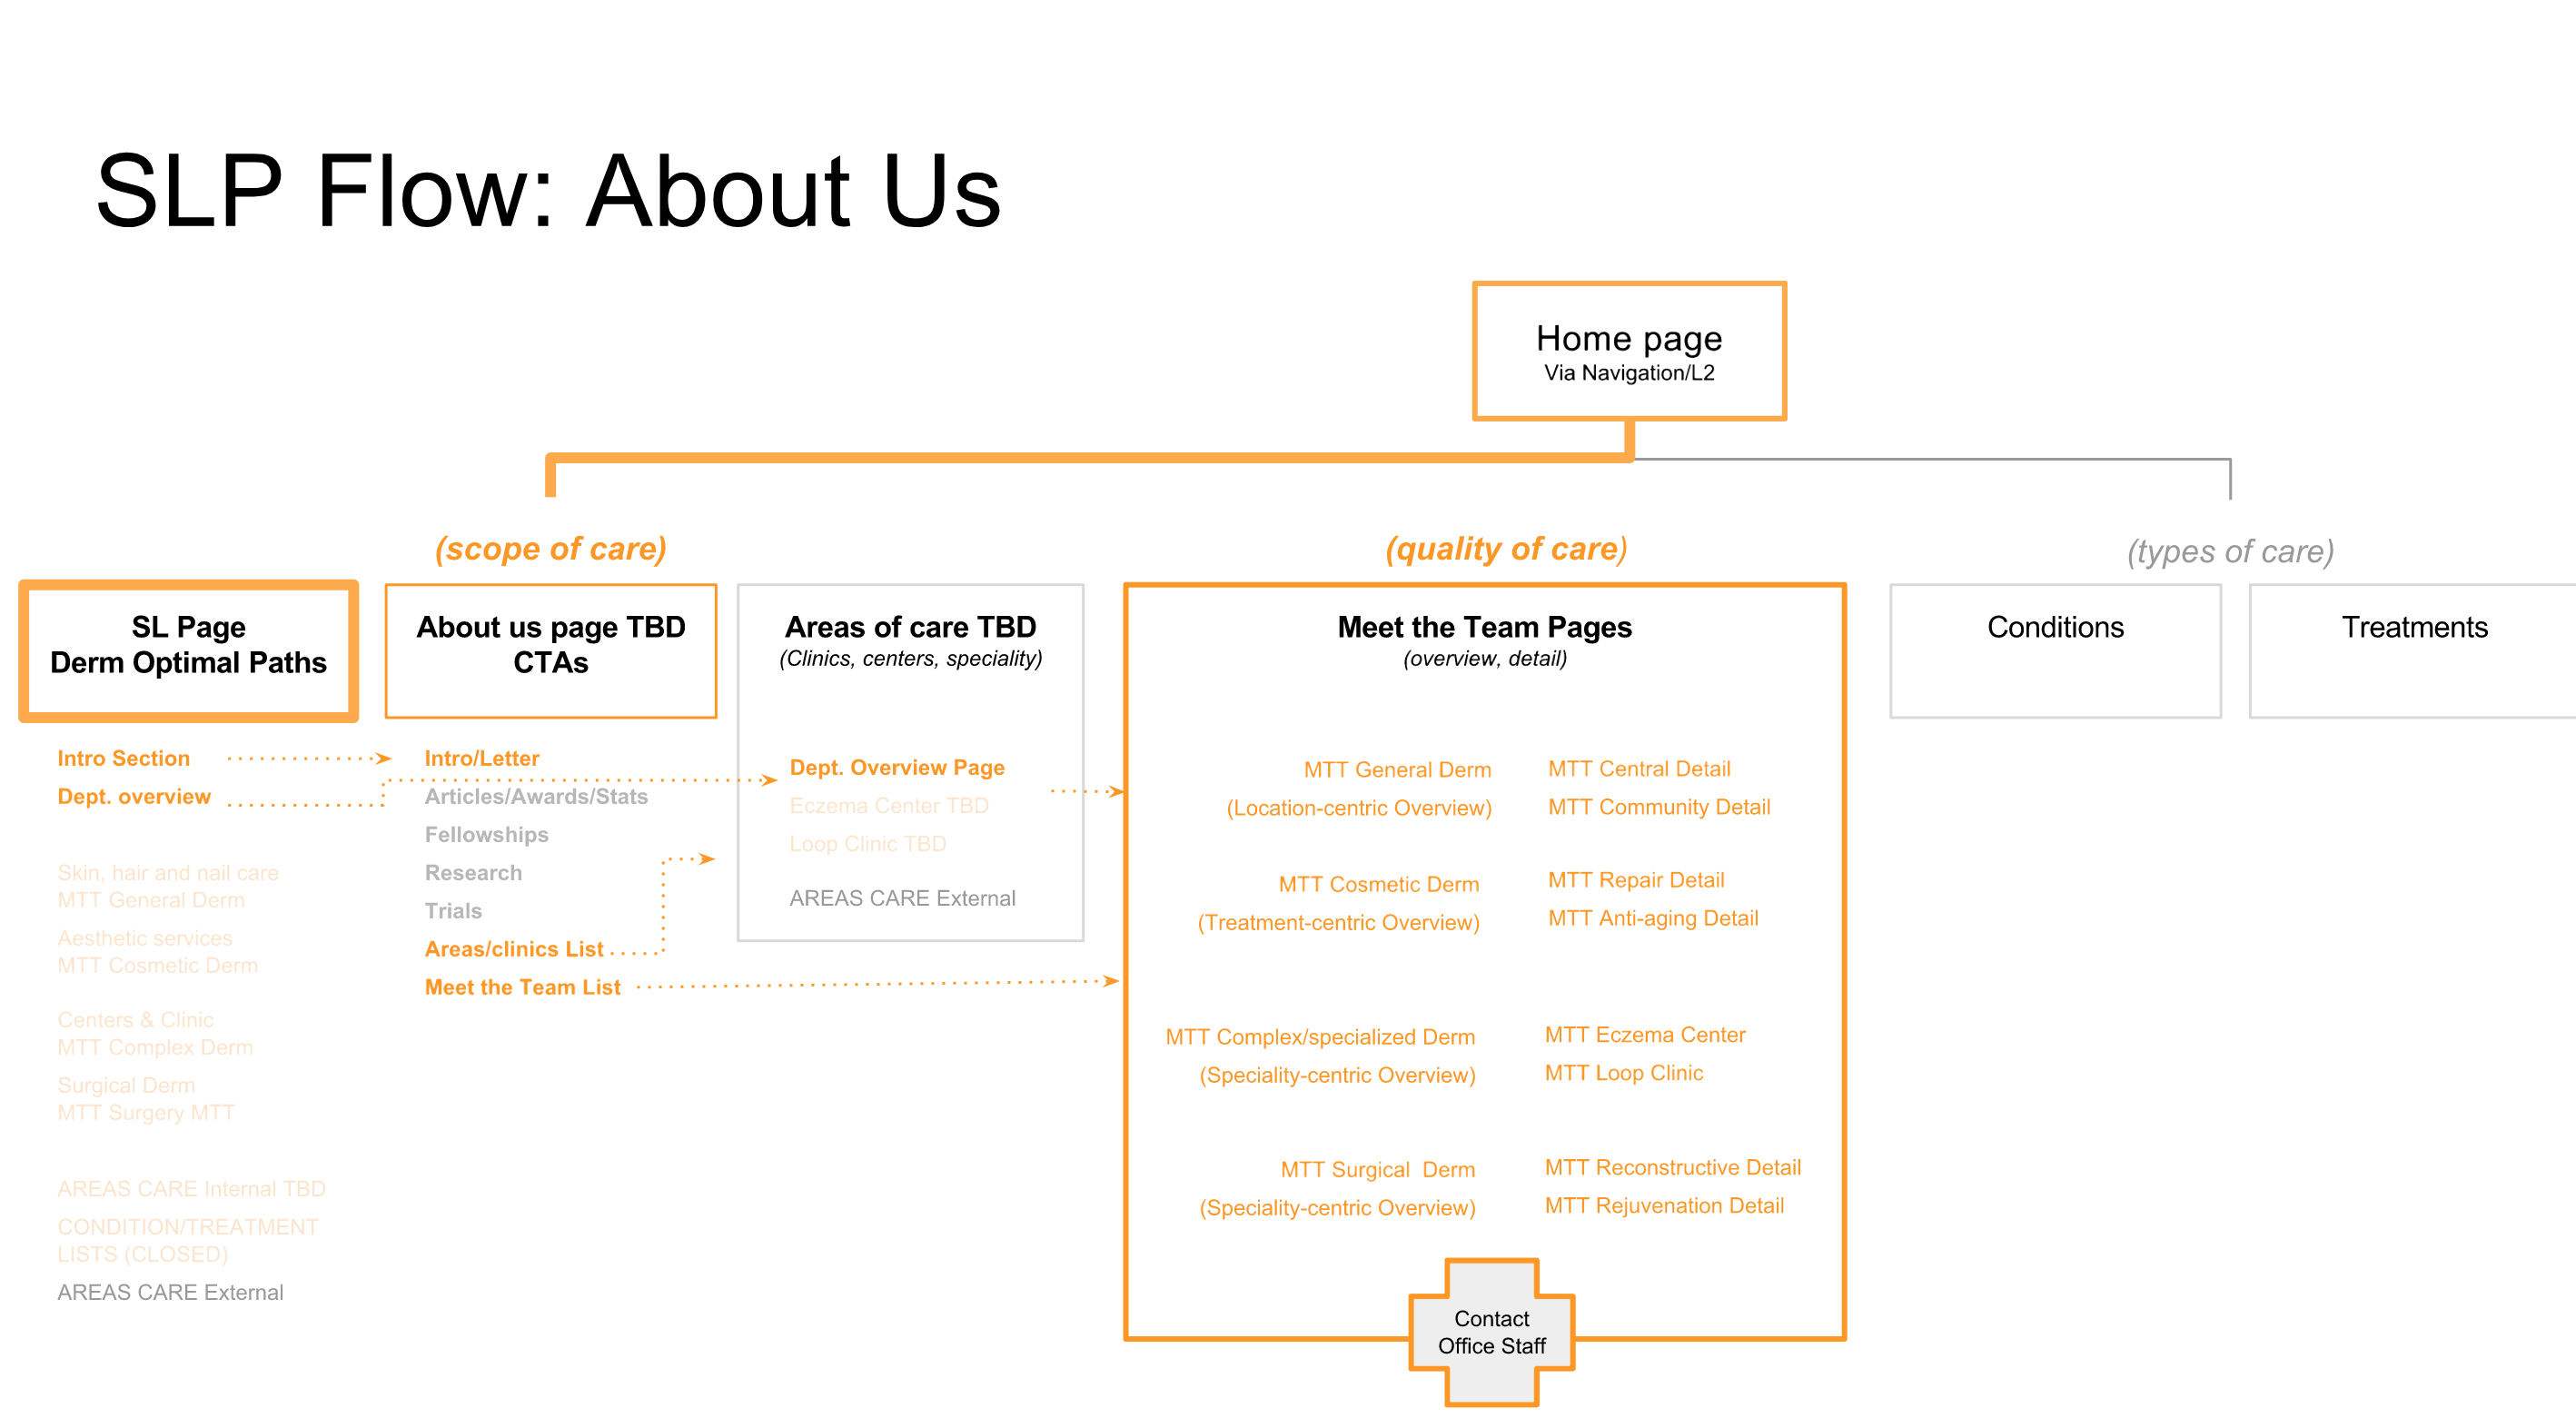 Existing content is mapped to new experience for each service-line based on findings.